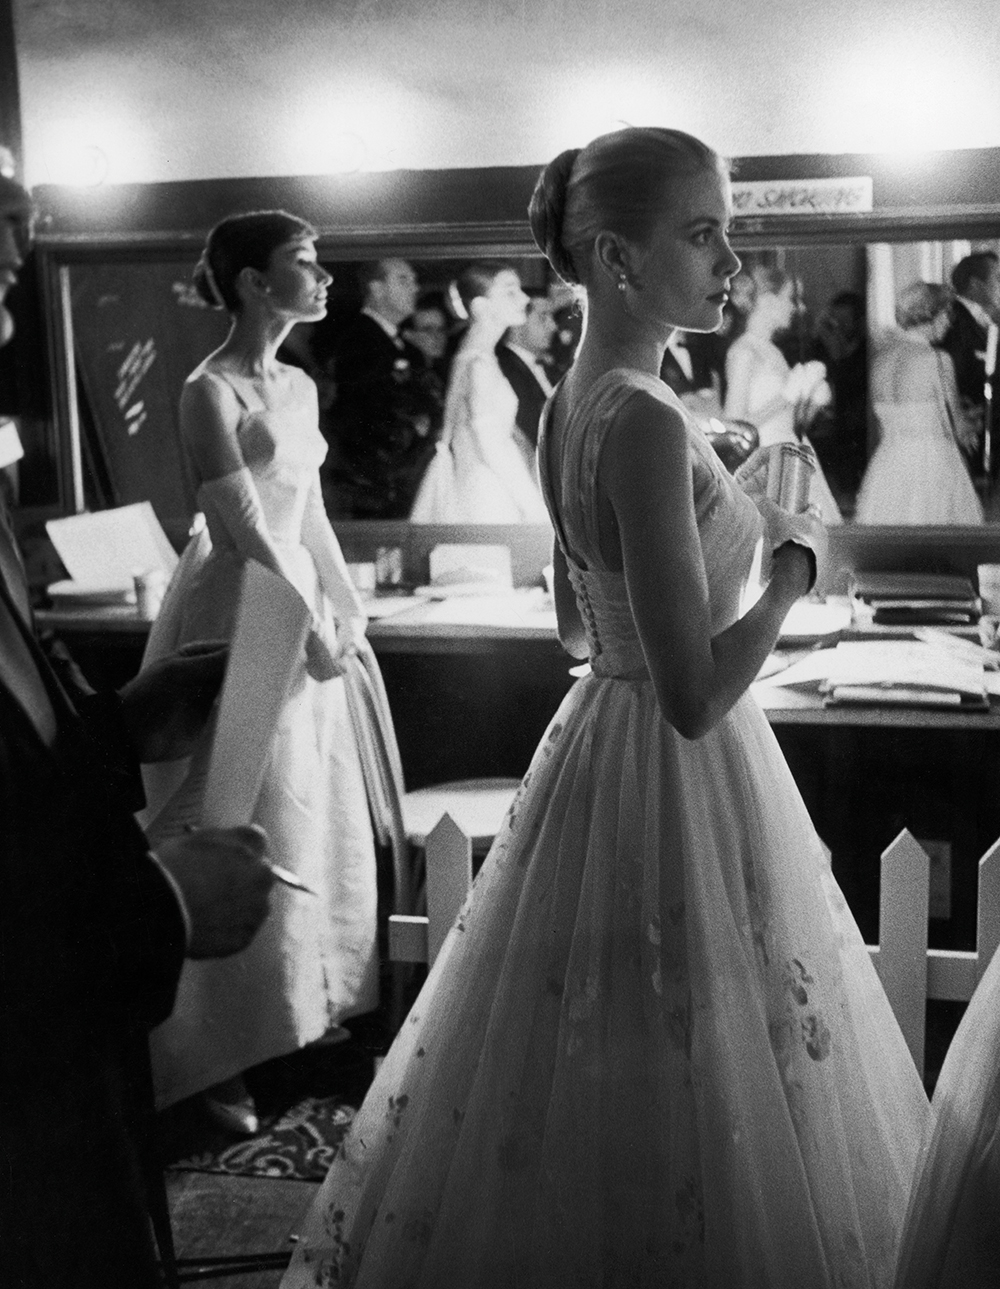 Audrey Hepburn and Grace Kelly backstage at the 1956 Academy Awards.